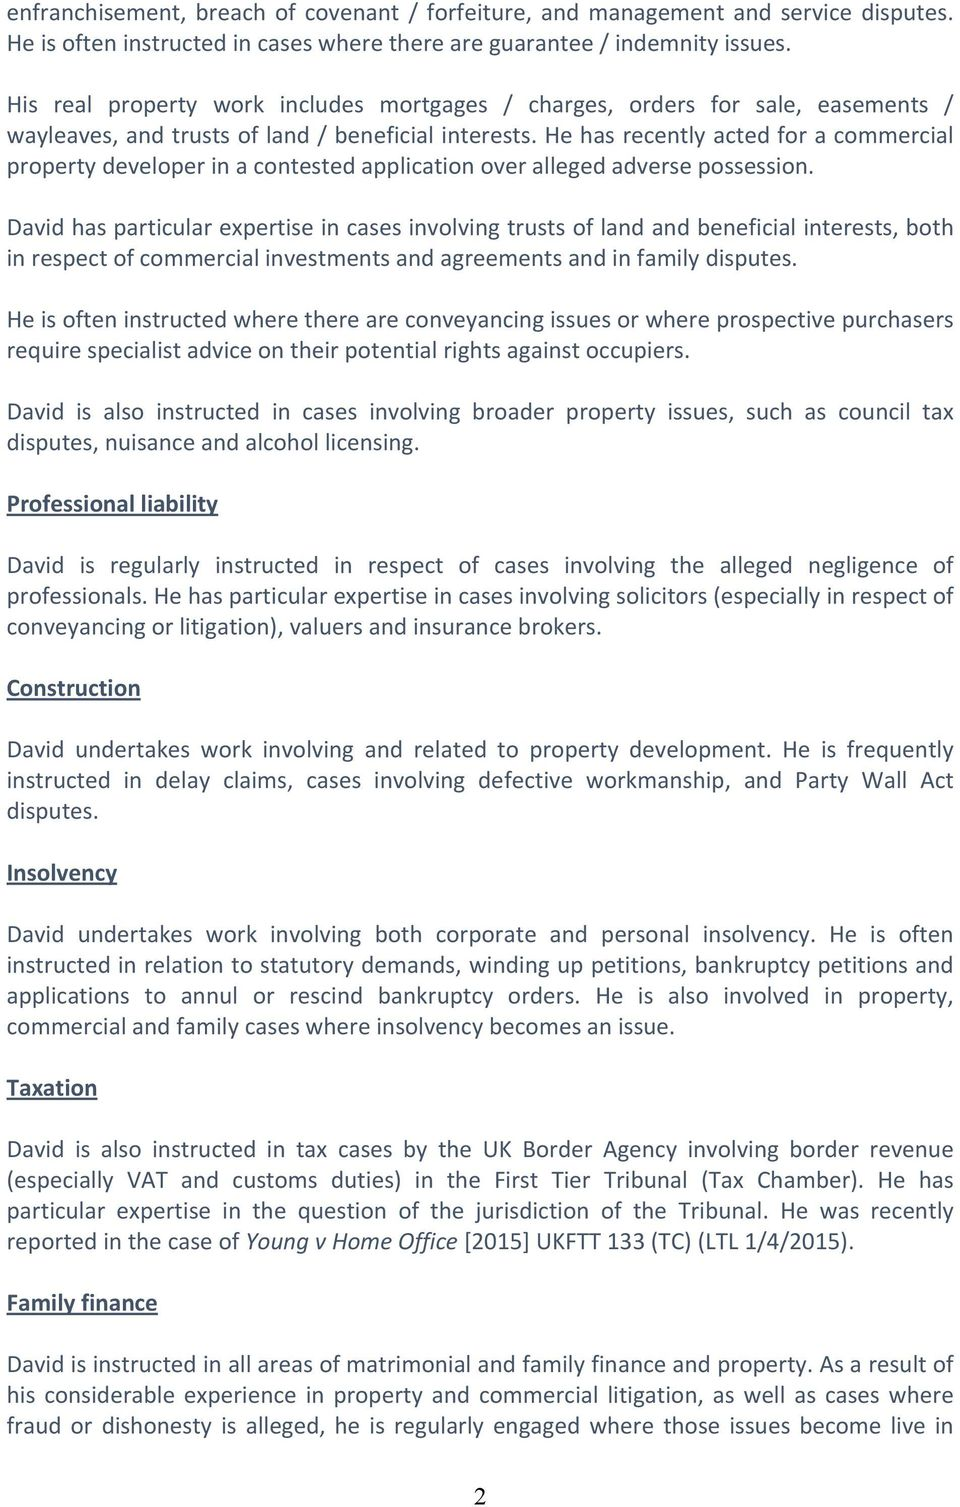 He has recently acted for a commercial property developer in a contested application over alleged adverse possession.